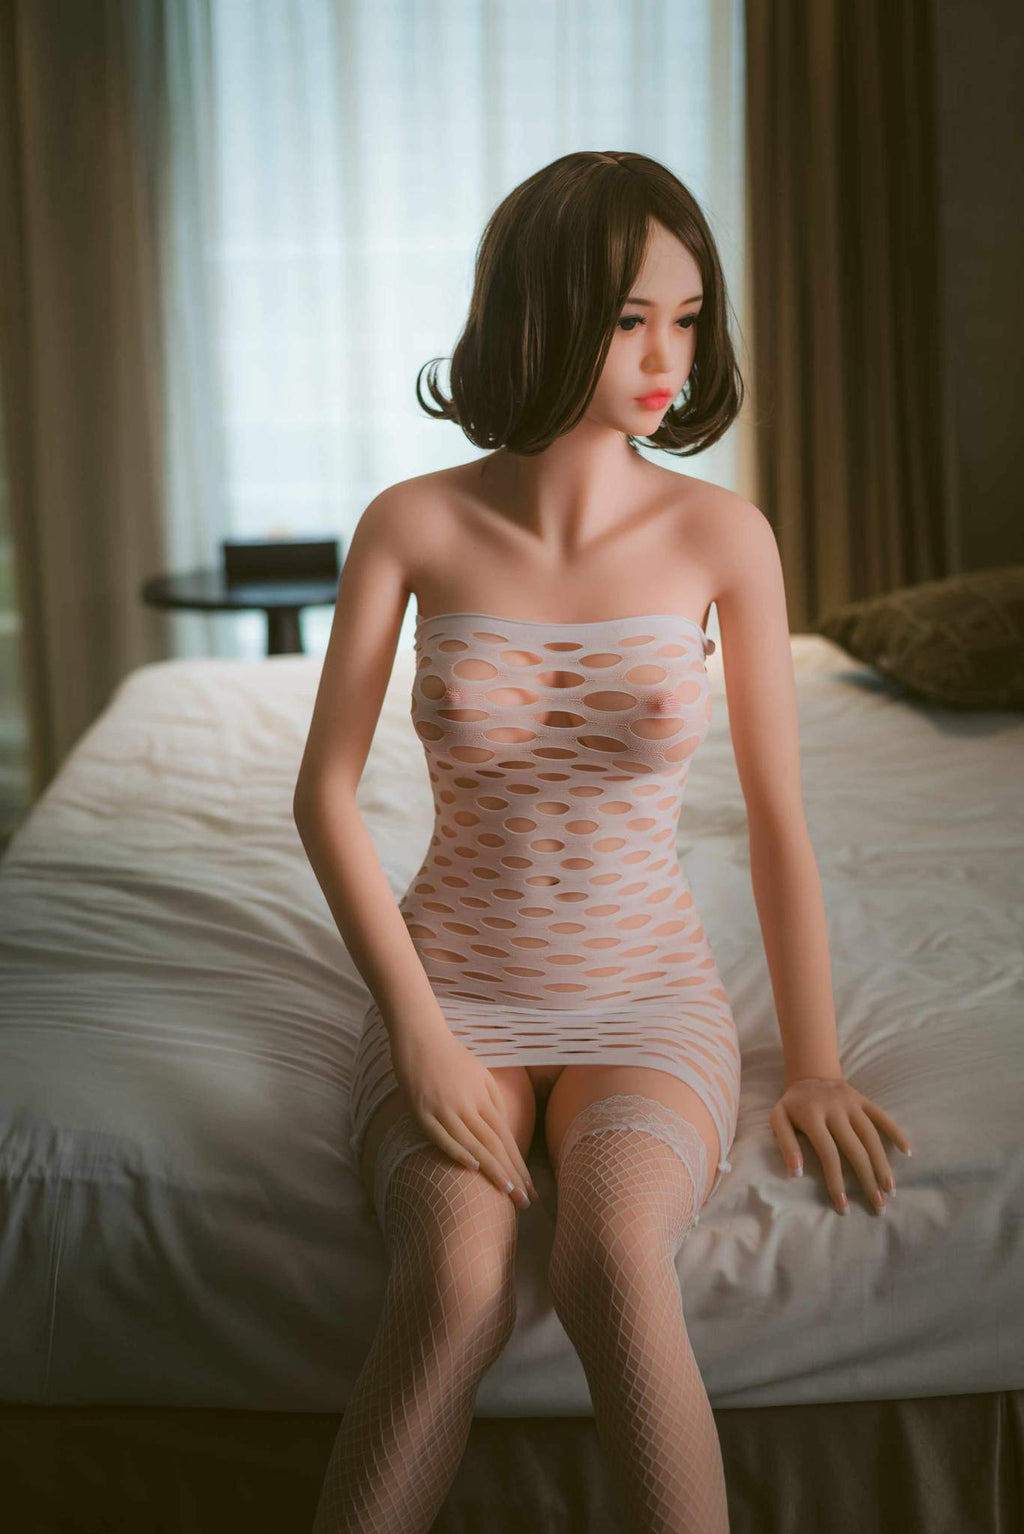 christine 163cm brown hair japanese medium tits skinny tpe wm sex doll